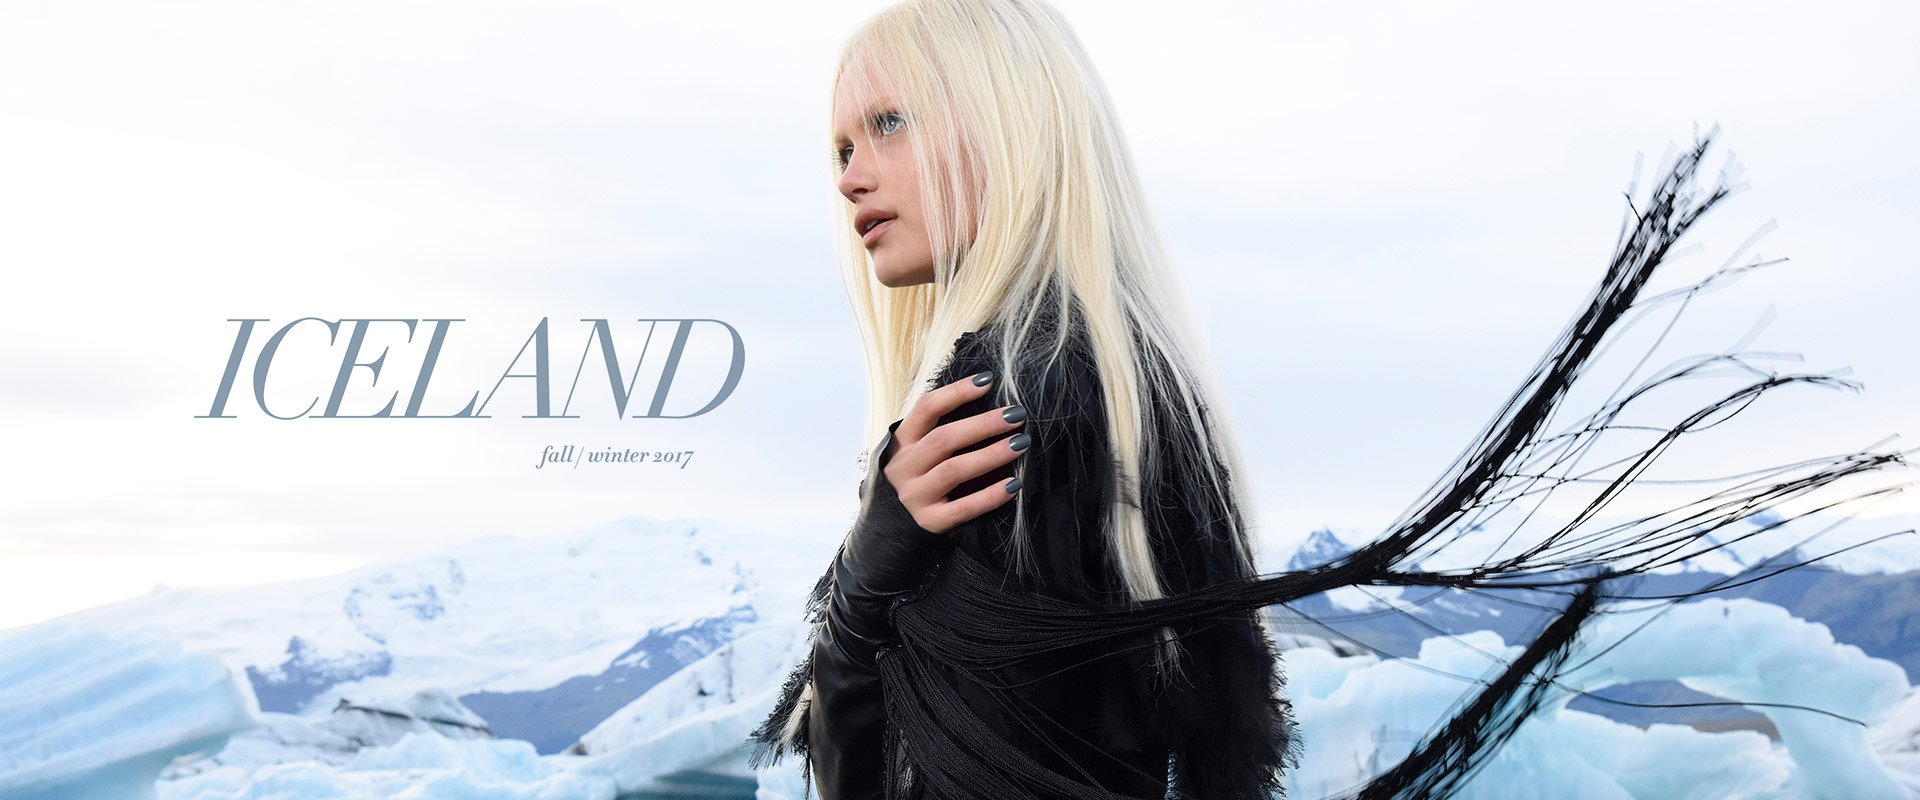 OPI-Iceland-CollectionsMainBanner-1920x800.jpg